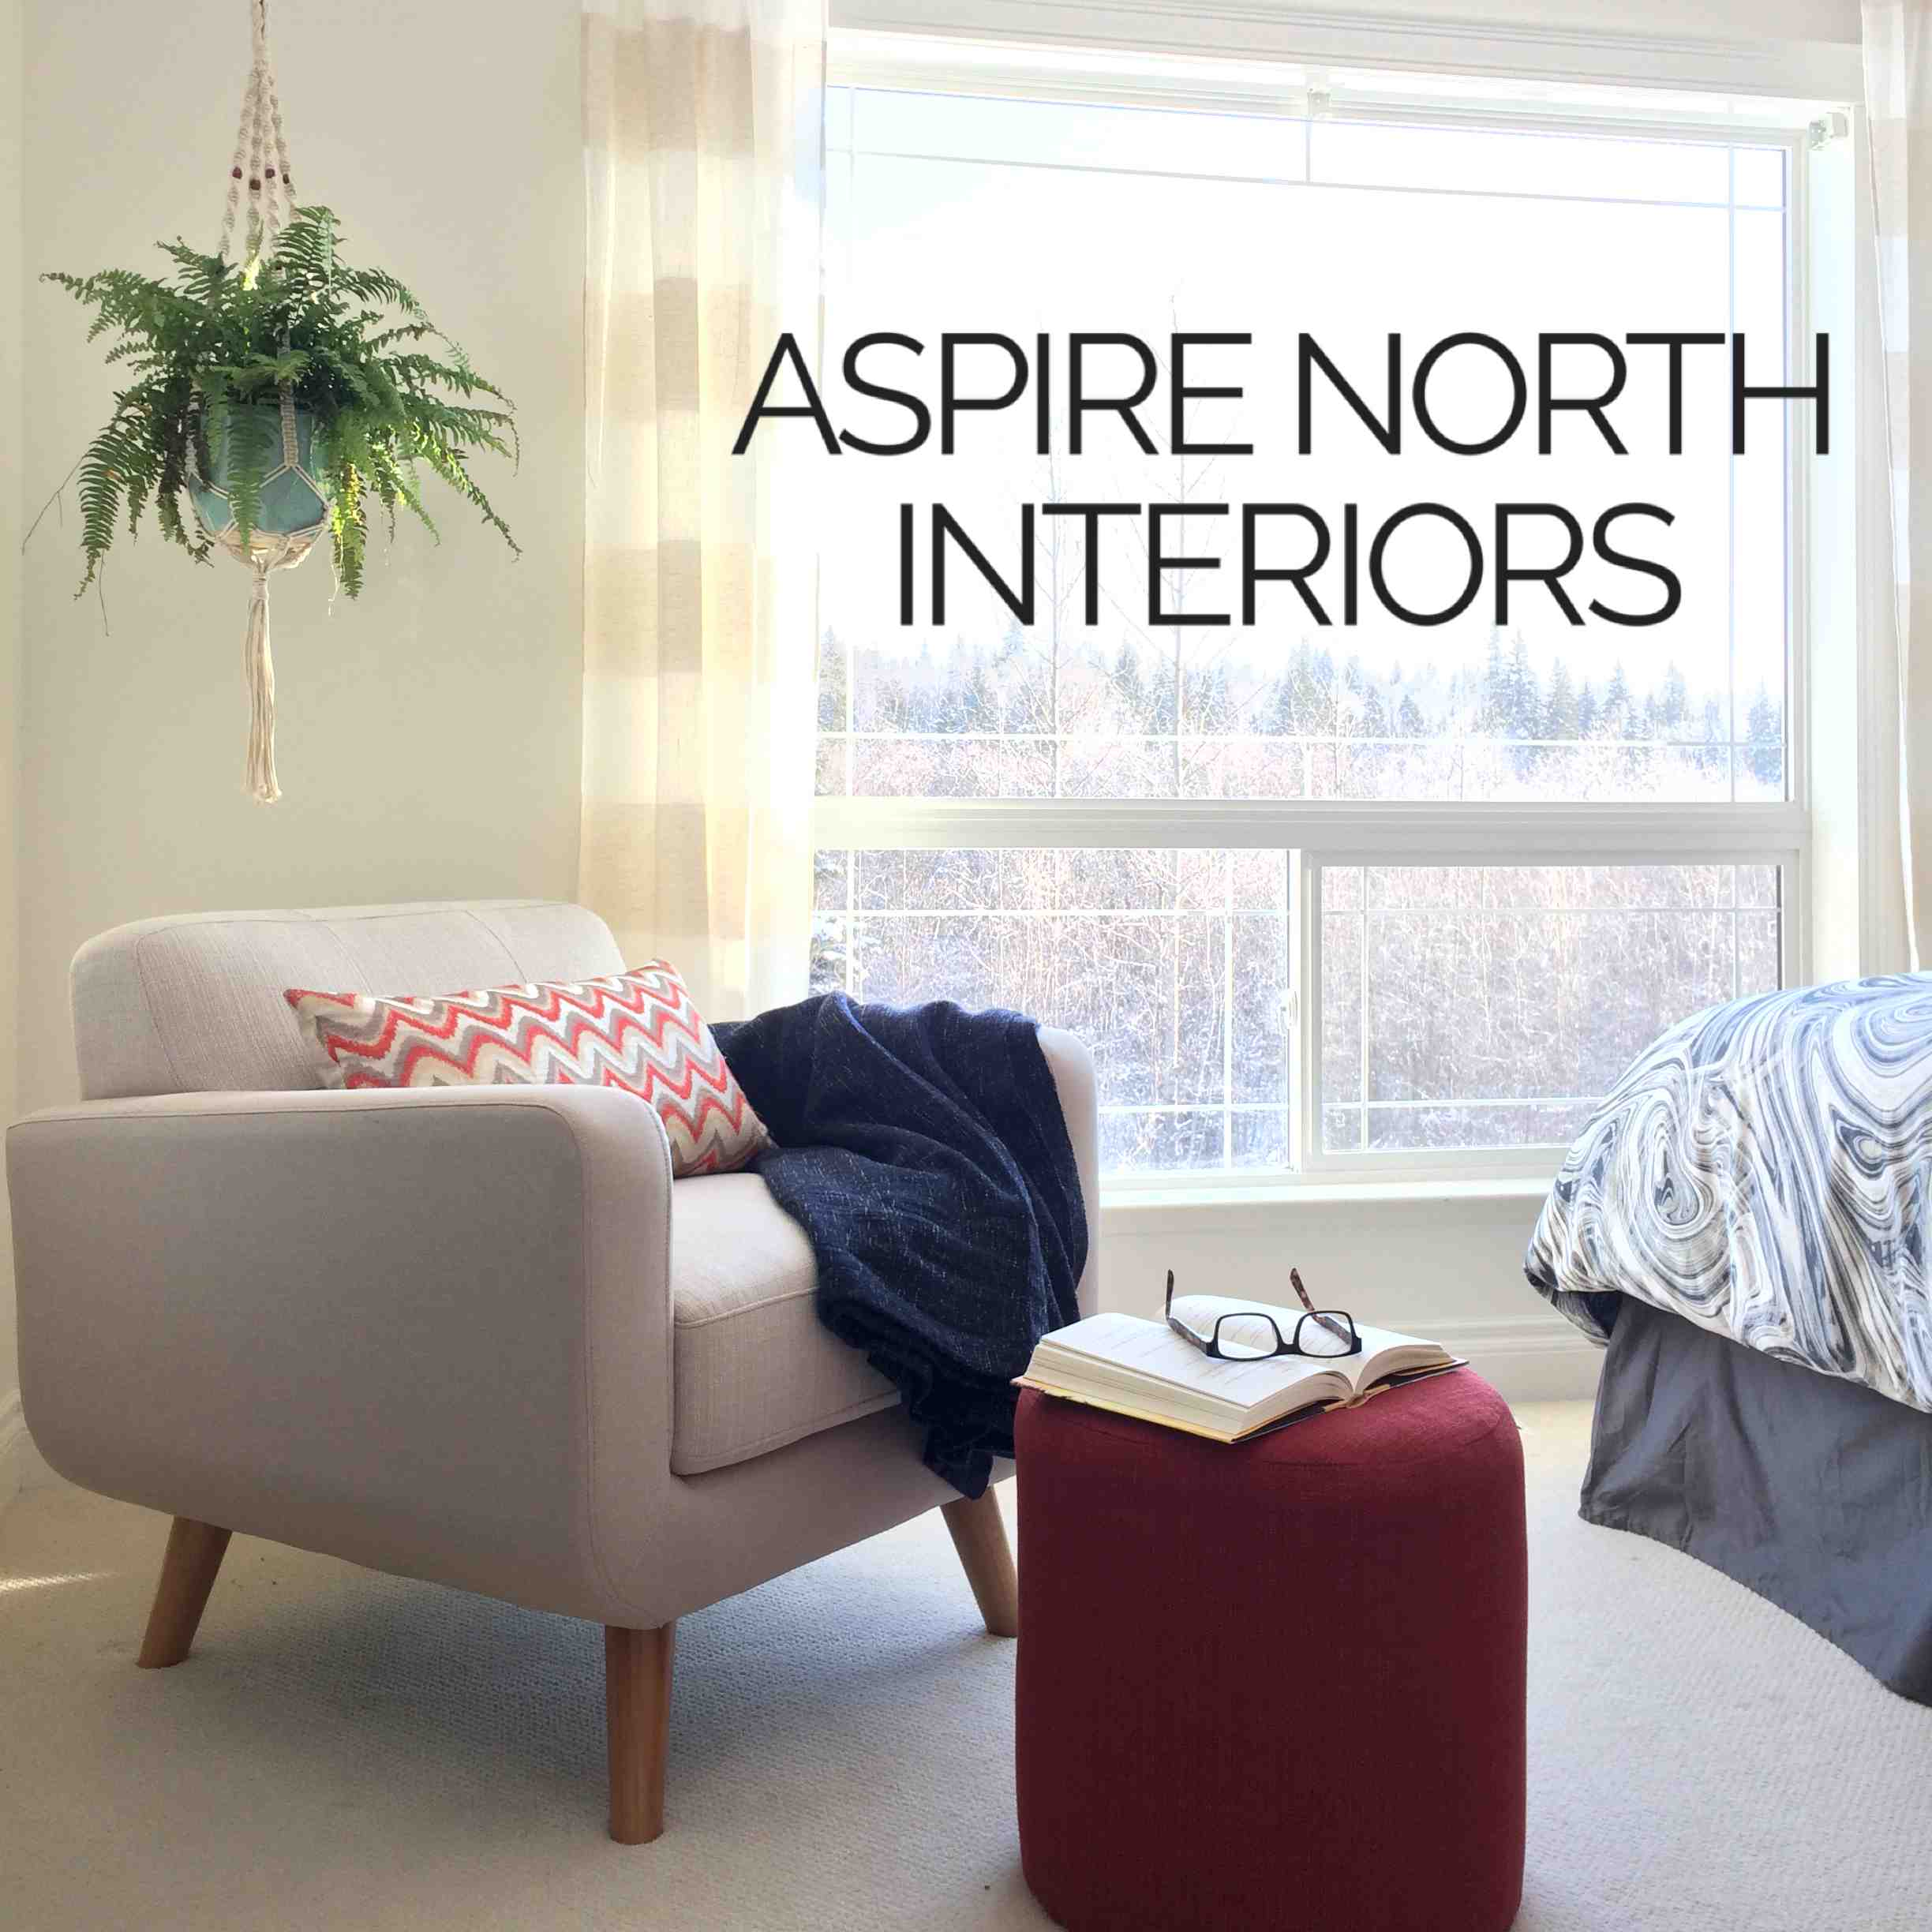 ASPIRE NORTH INTERIORS logo